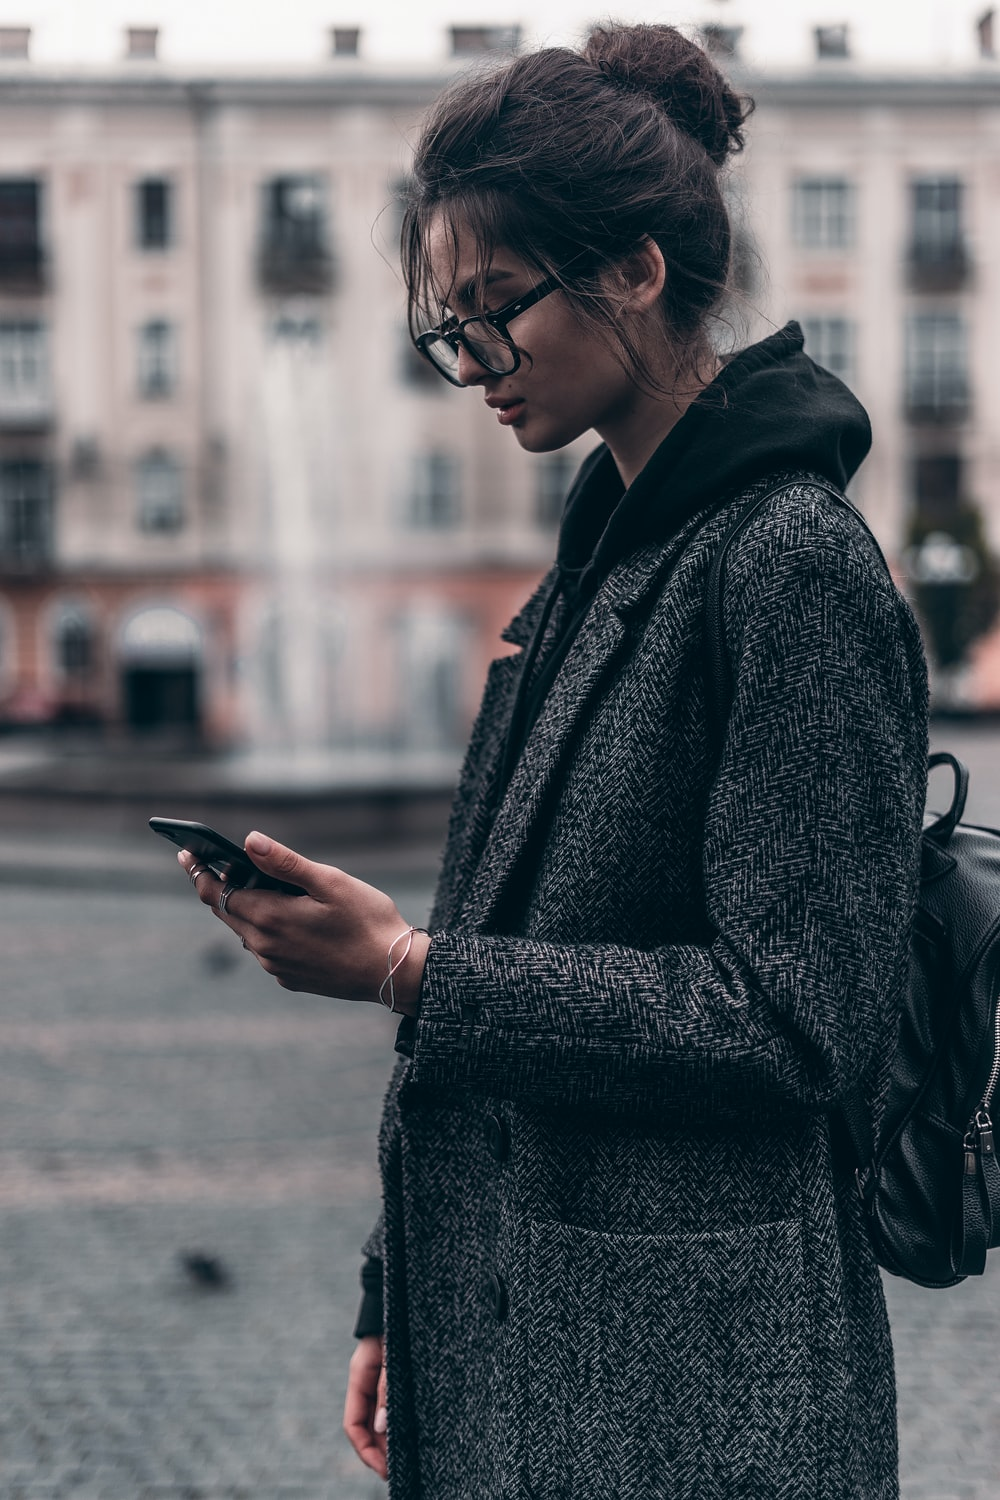 woman standing while using smartphone during daytime